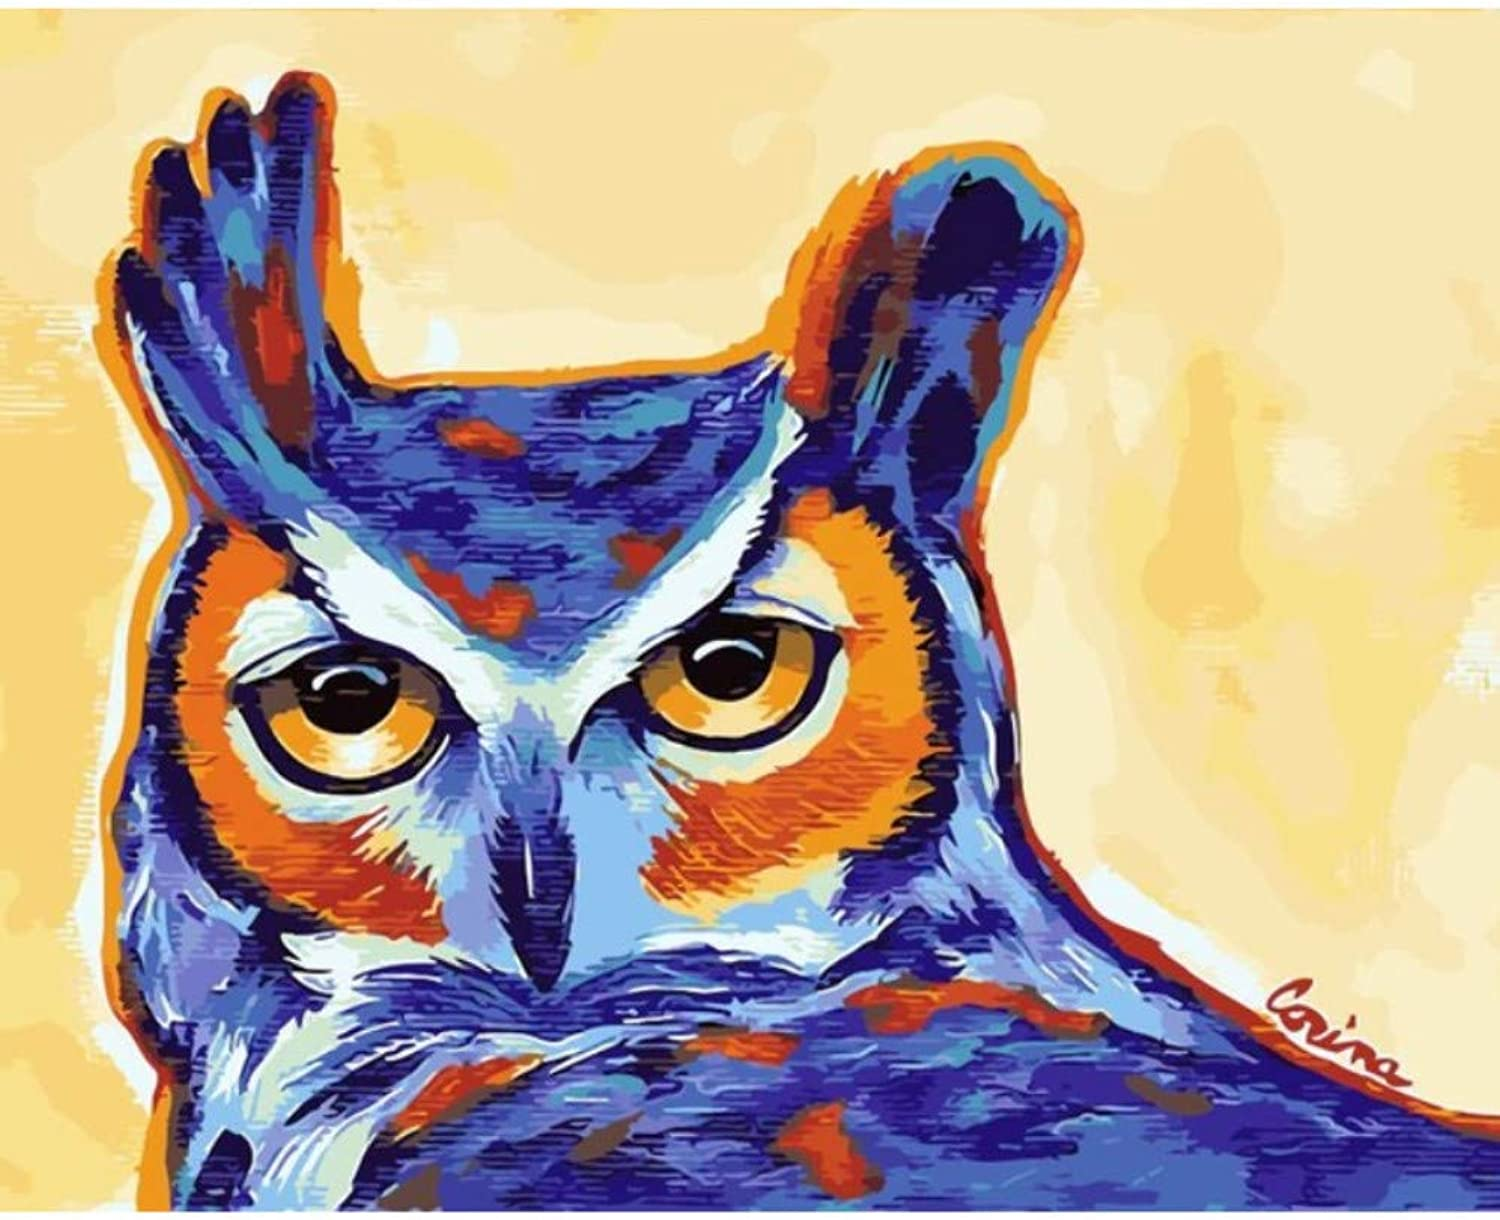 Owl Animal Painting by Number Good Gift for Family Digital Oil Painting Home Decor Wall Art for Living Room Drawing by Numbers 50x60CM